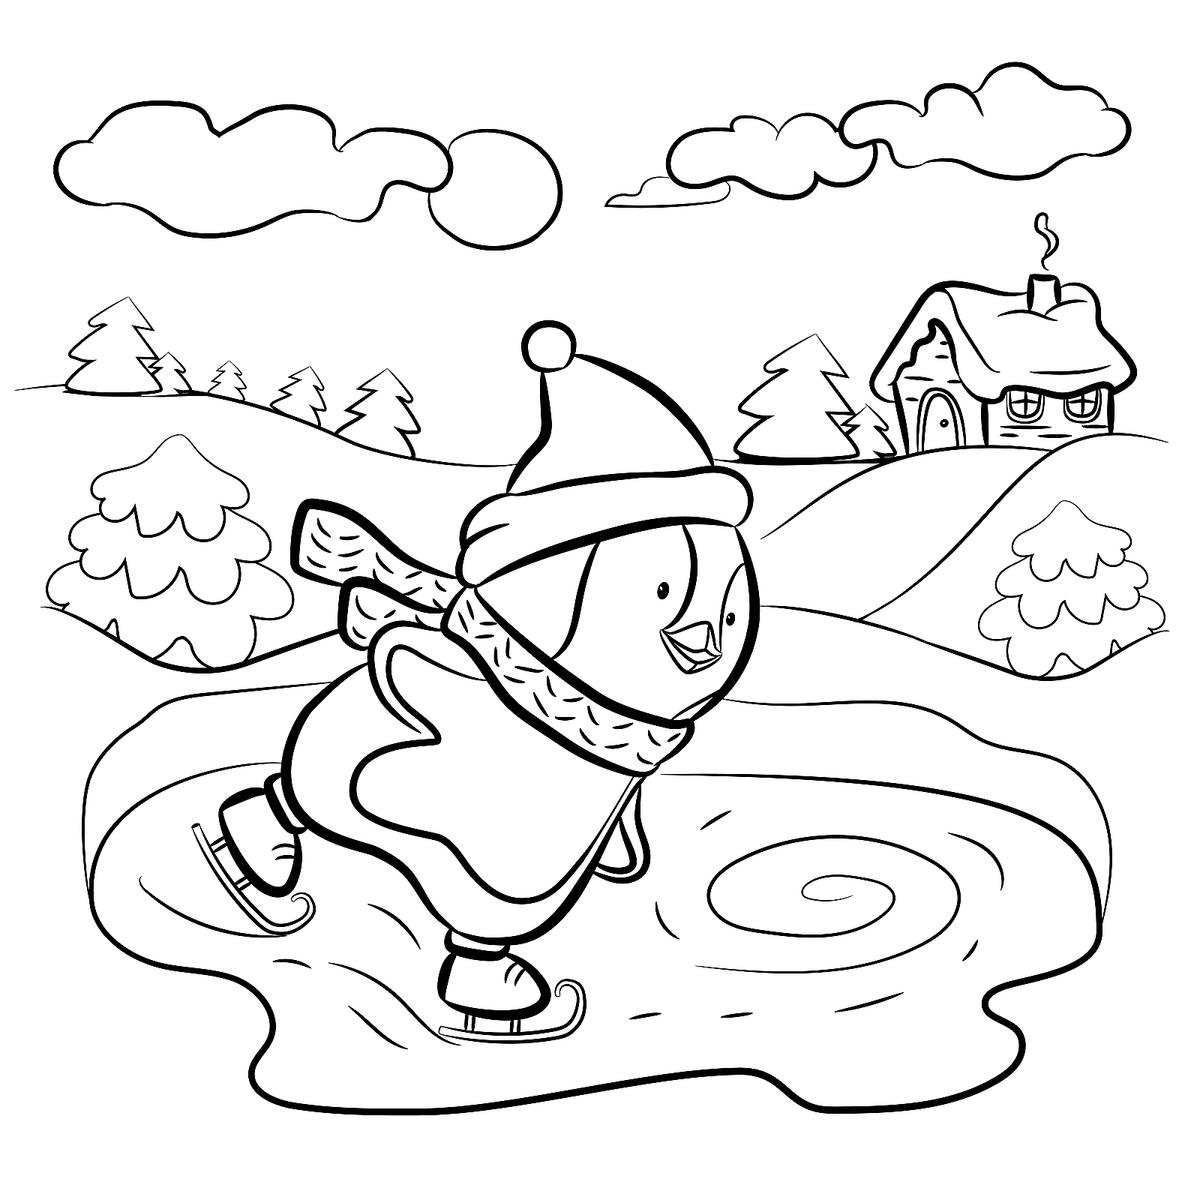 winter coloring pages for kids Winter Puzzle & Coloring Pages: Printable Winter Themed Activity  winter coloring pages for kids